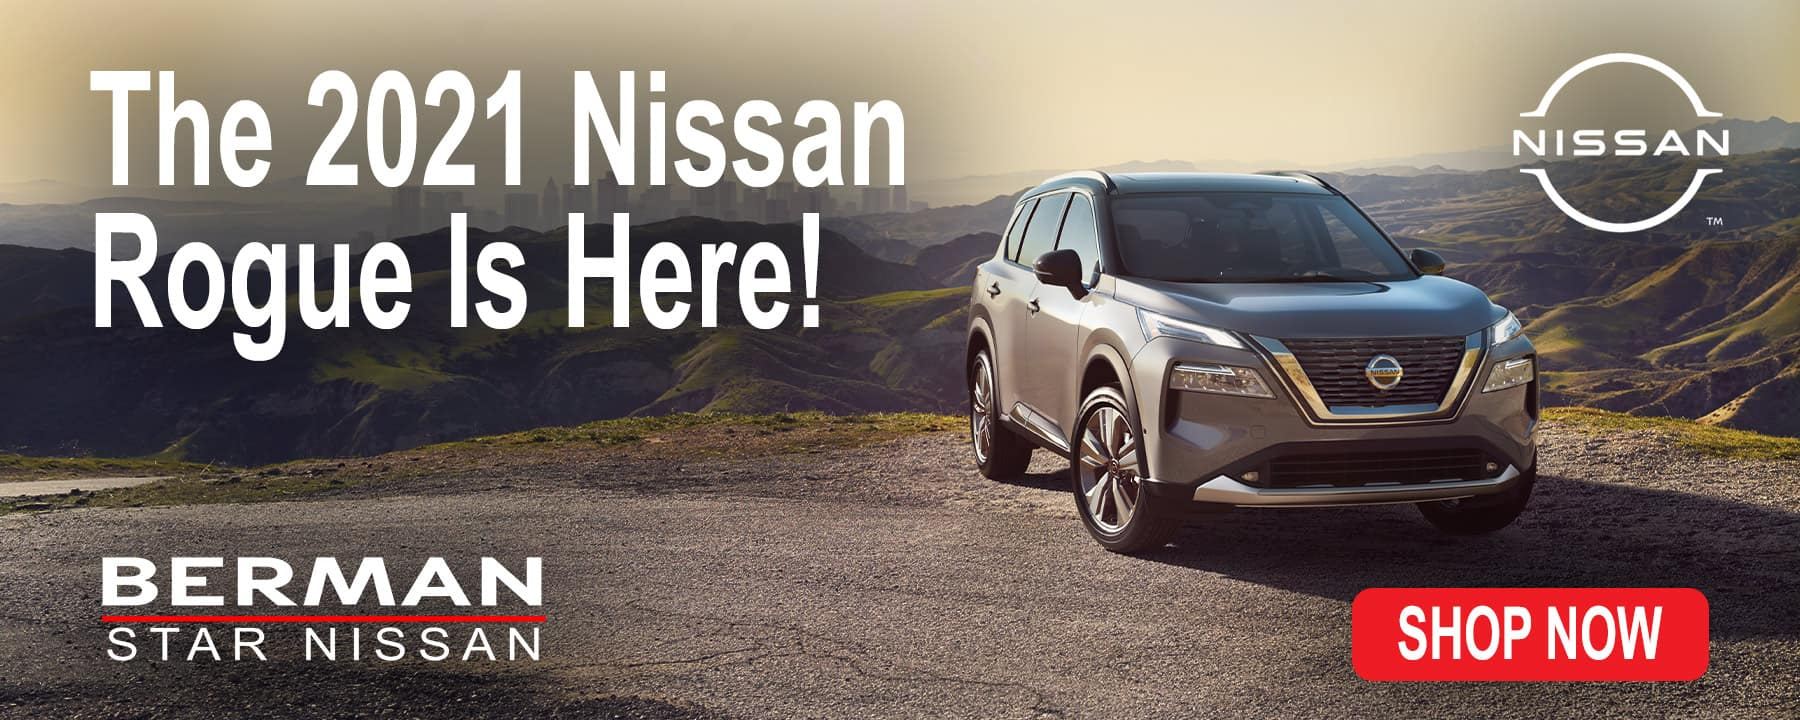 The 2021 Nissan Rogue is HERE! Shop Now!